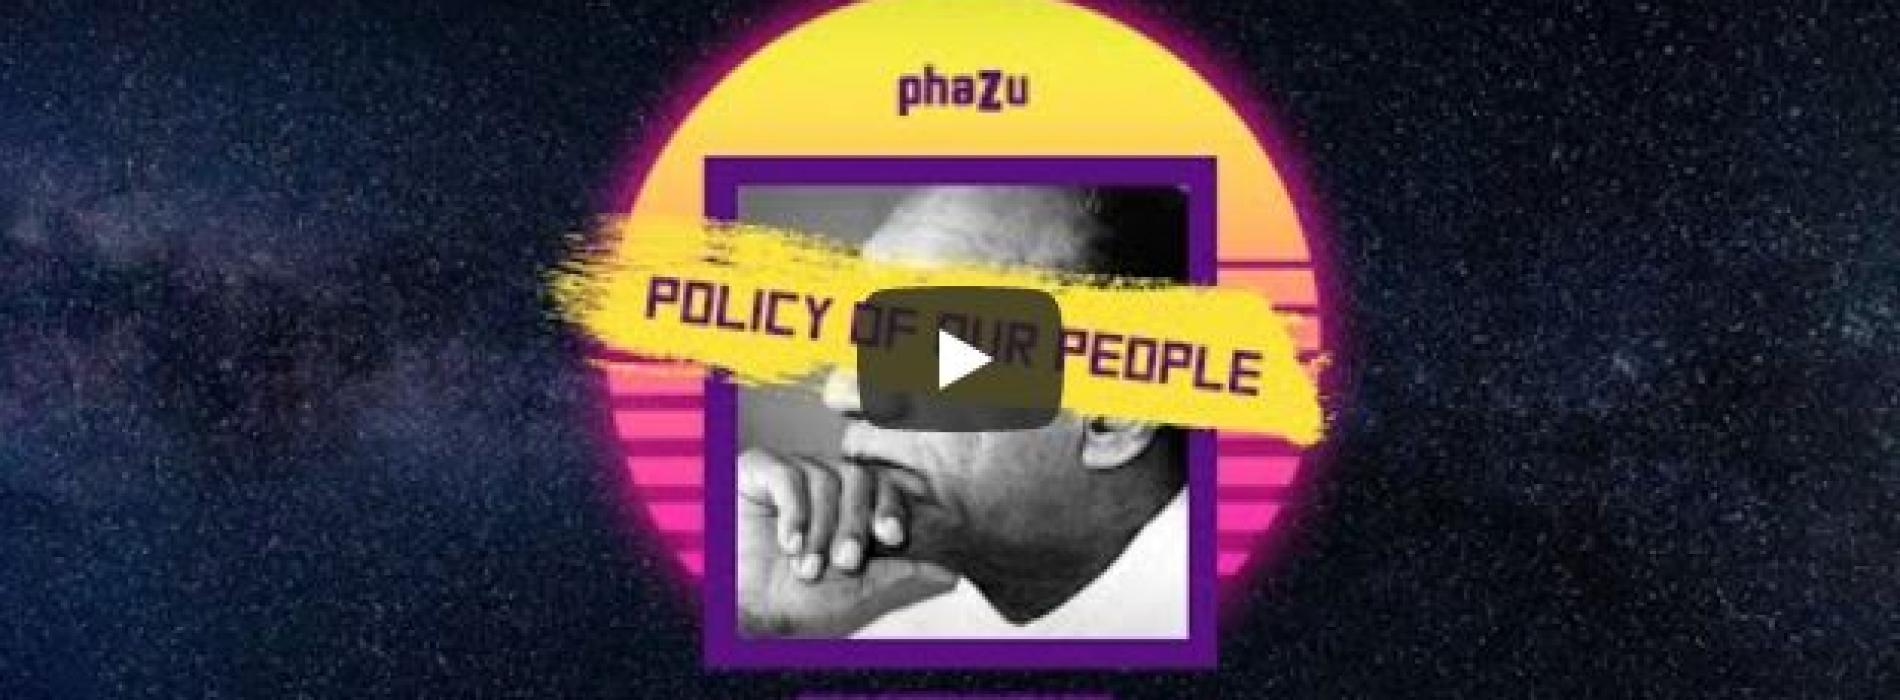 New Music : Phazu – Policy Of Our People – [JR Progressive MIX]